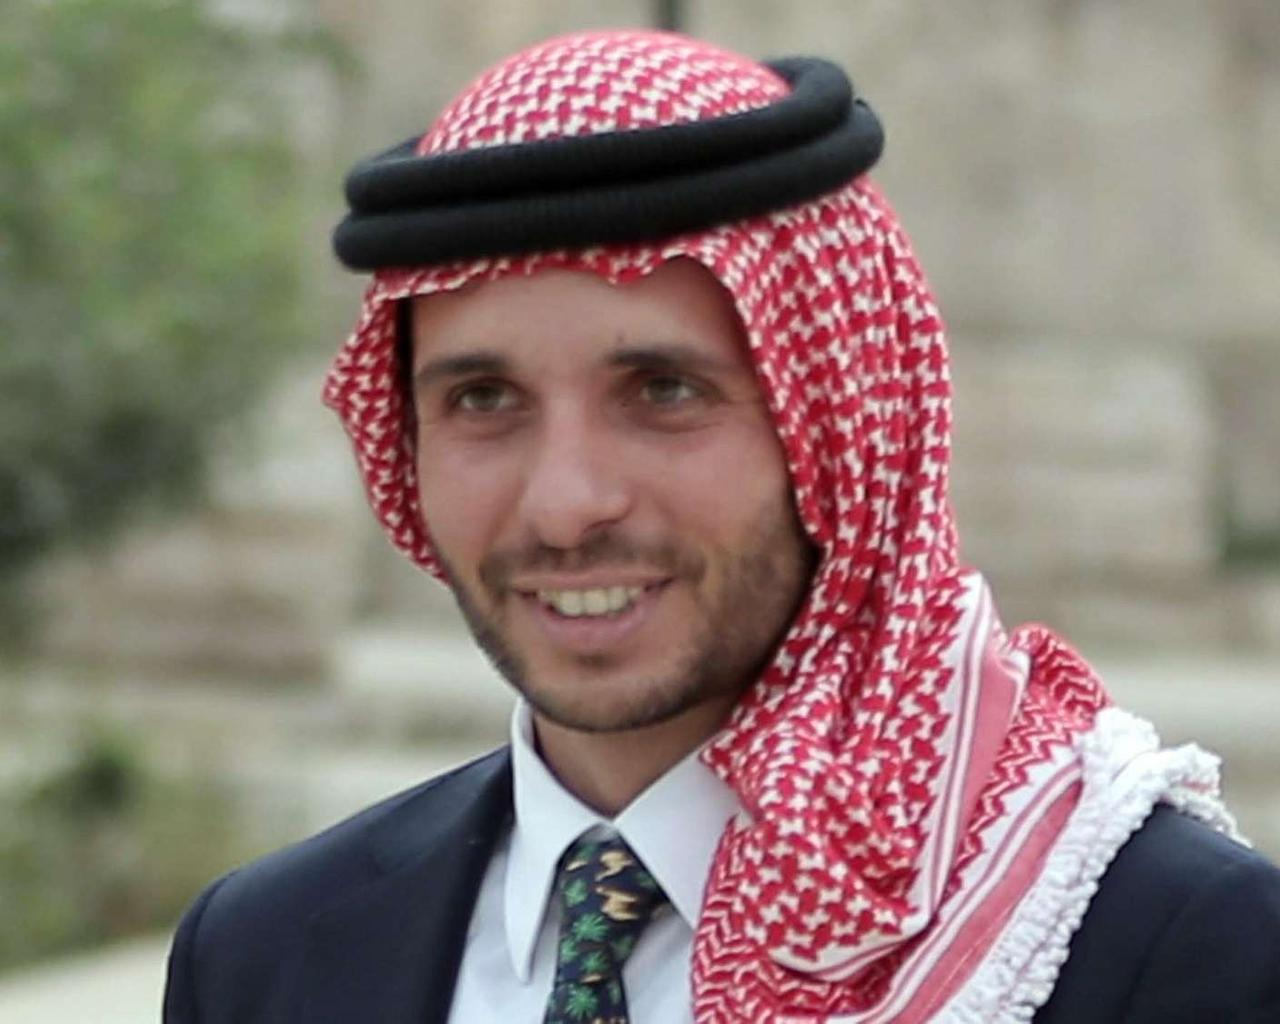 A Jordanian official says he was detained in a house